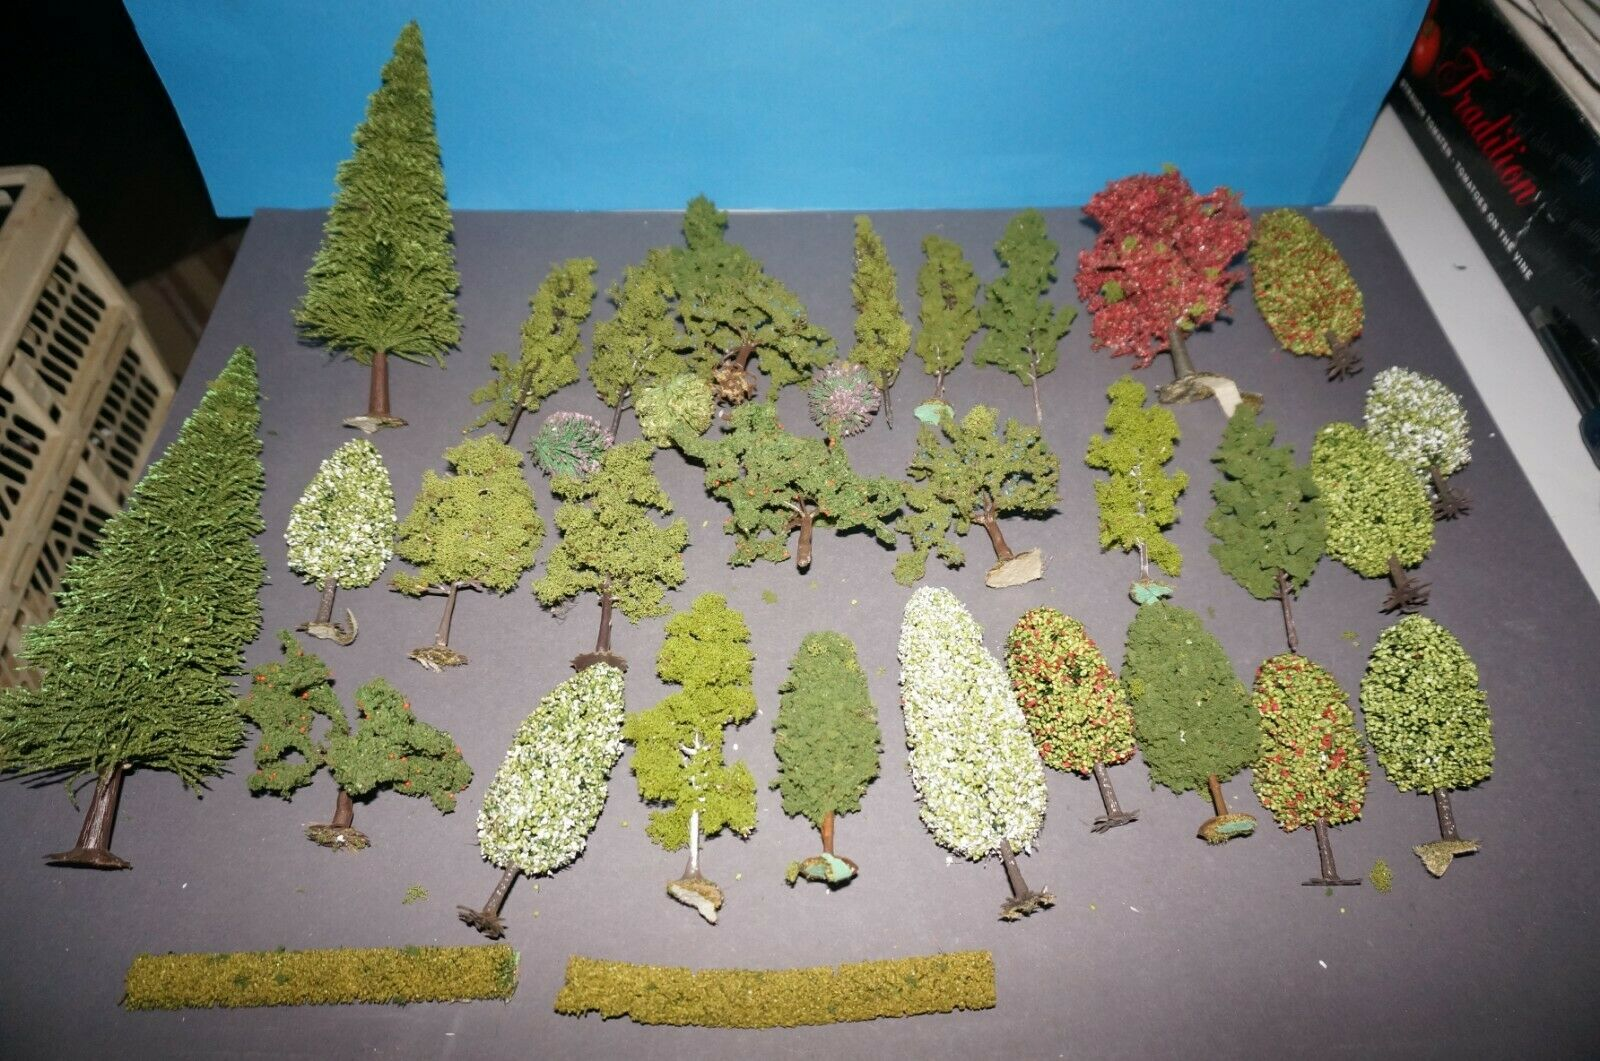 Mixed Forest Trees H0 Fir Leaves Fruit Trees Bushes 70 Trees Model Scenery